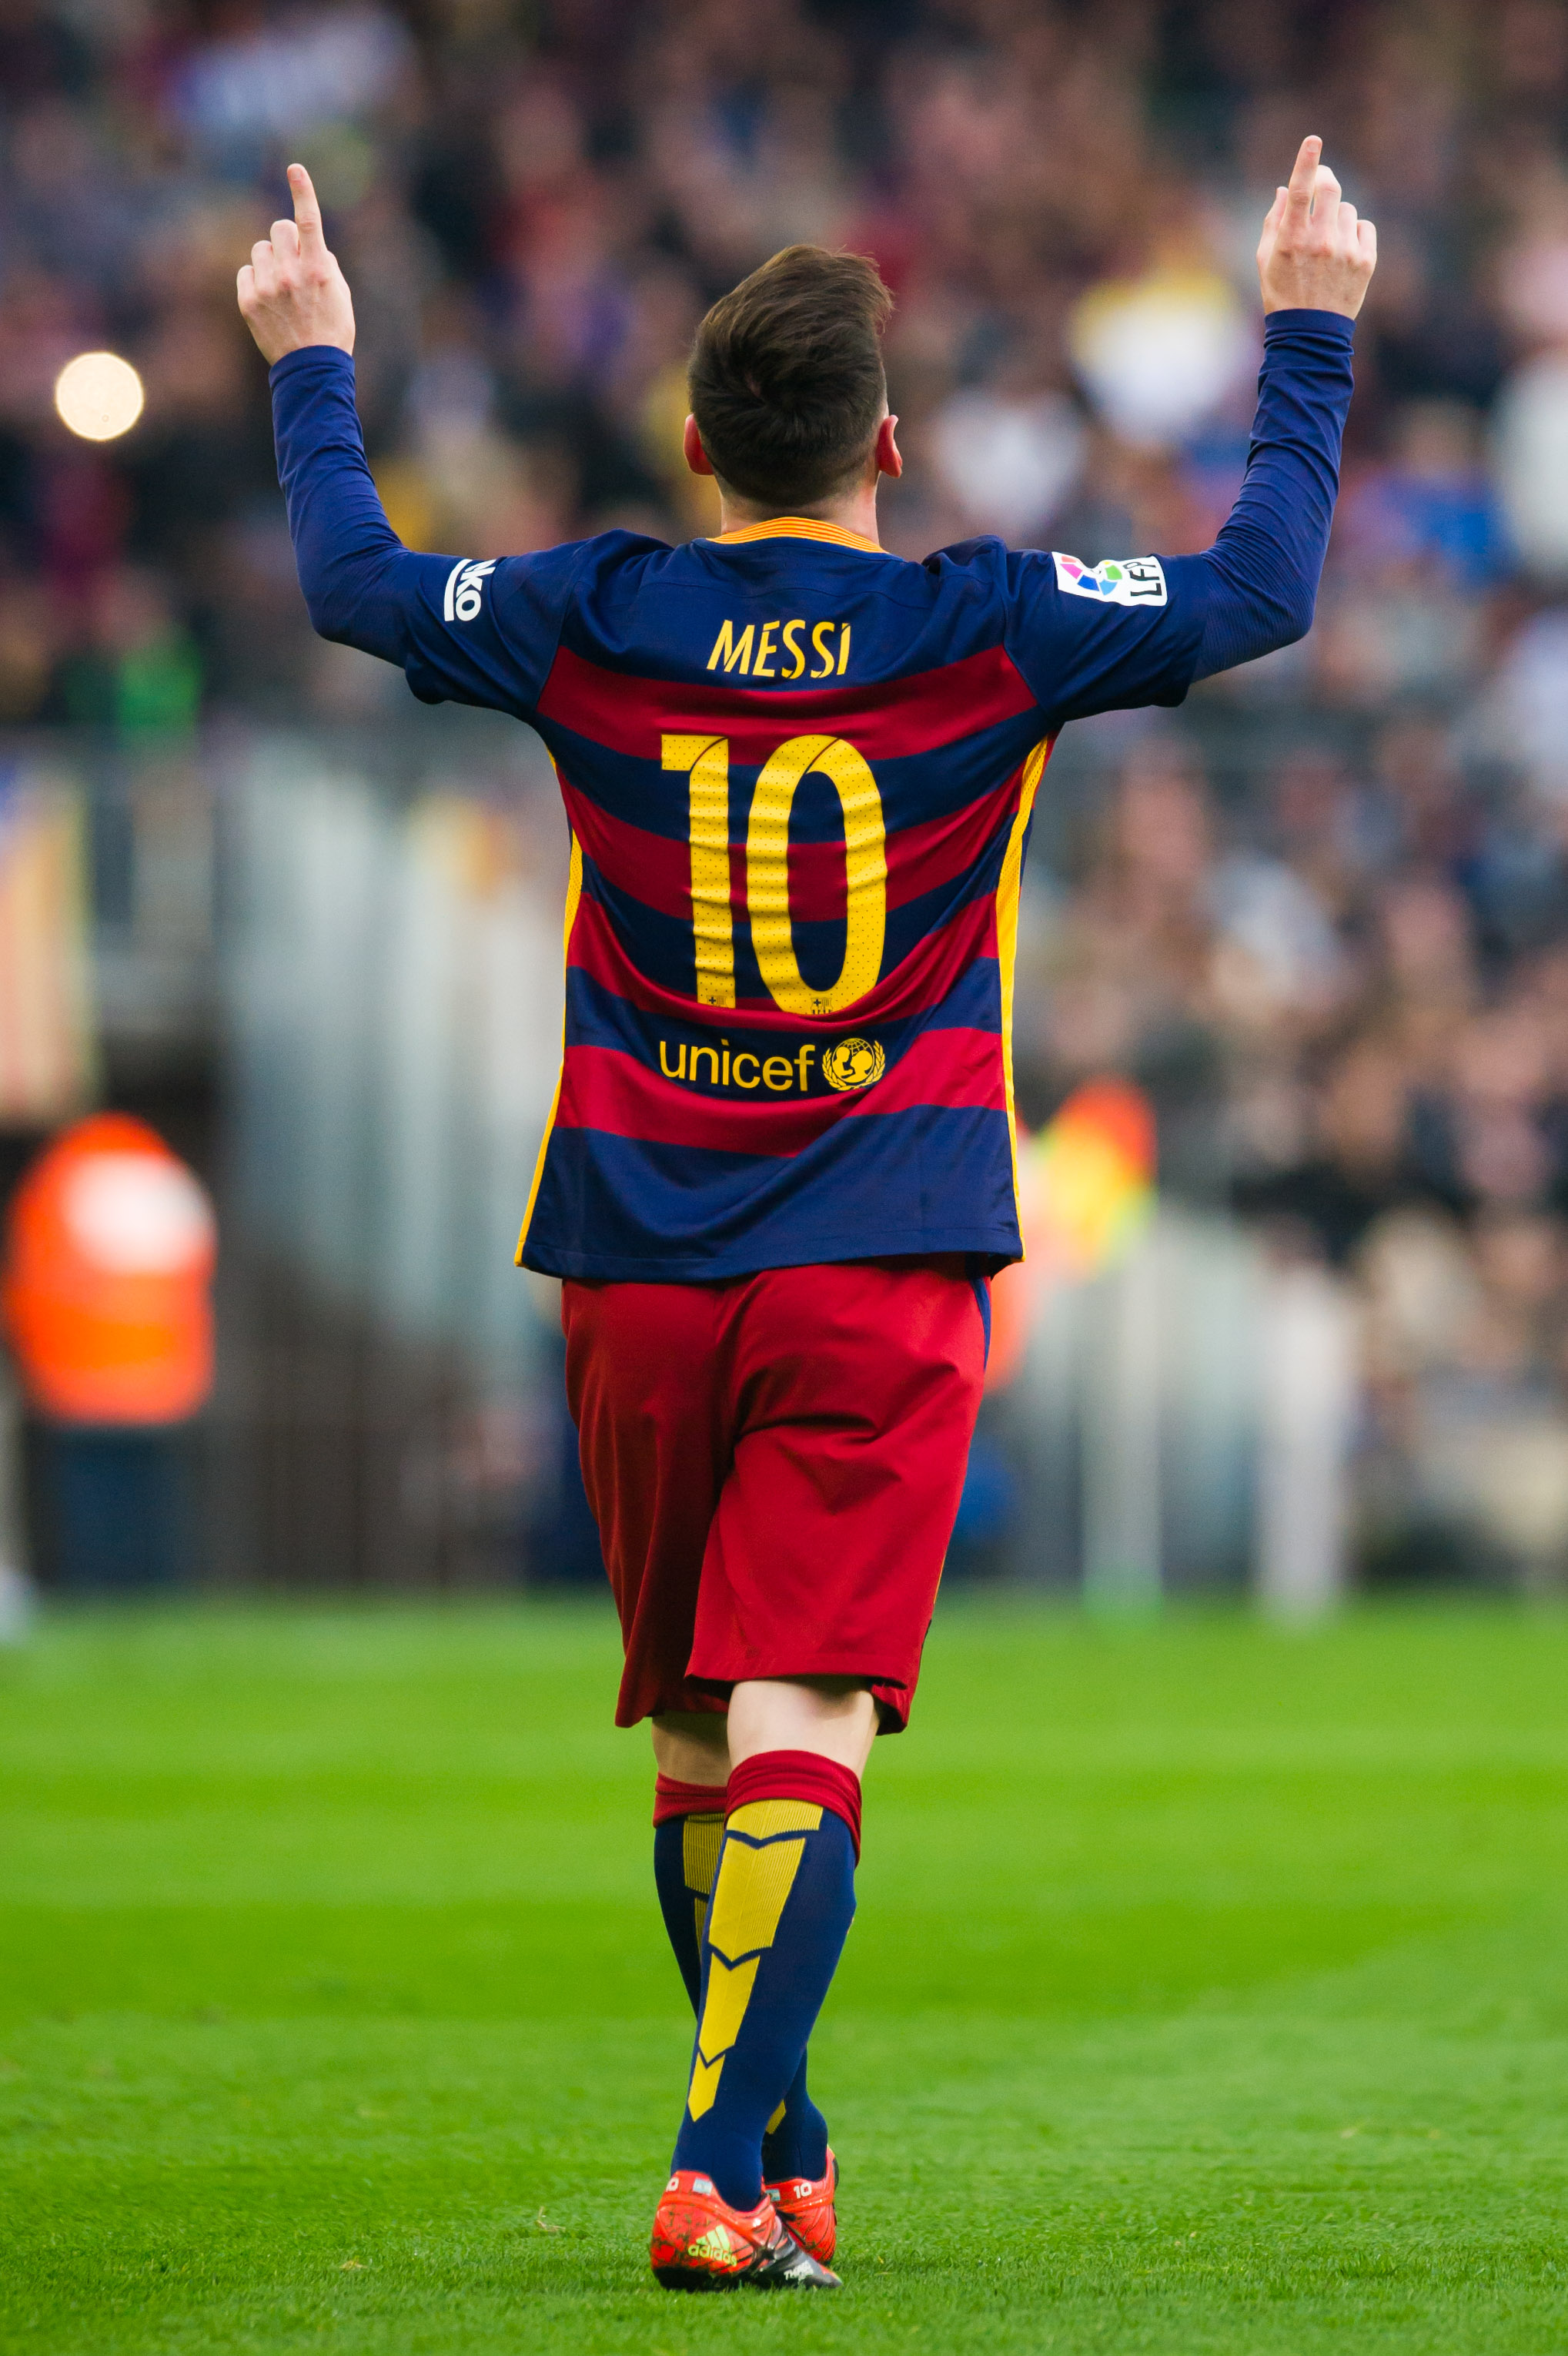 Lionel Messi's goal celebration: The touching reason behind